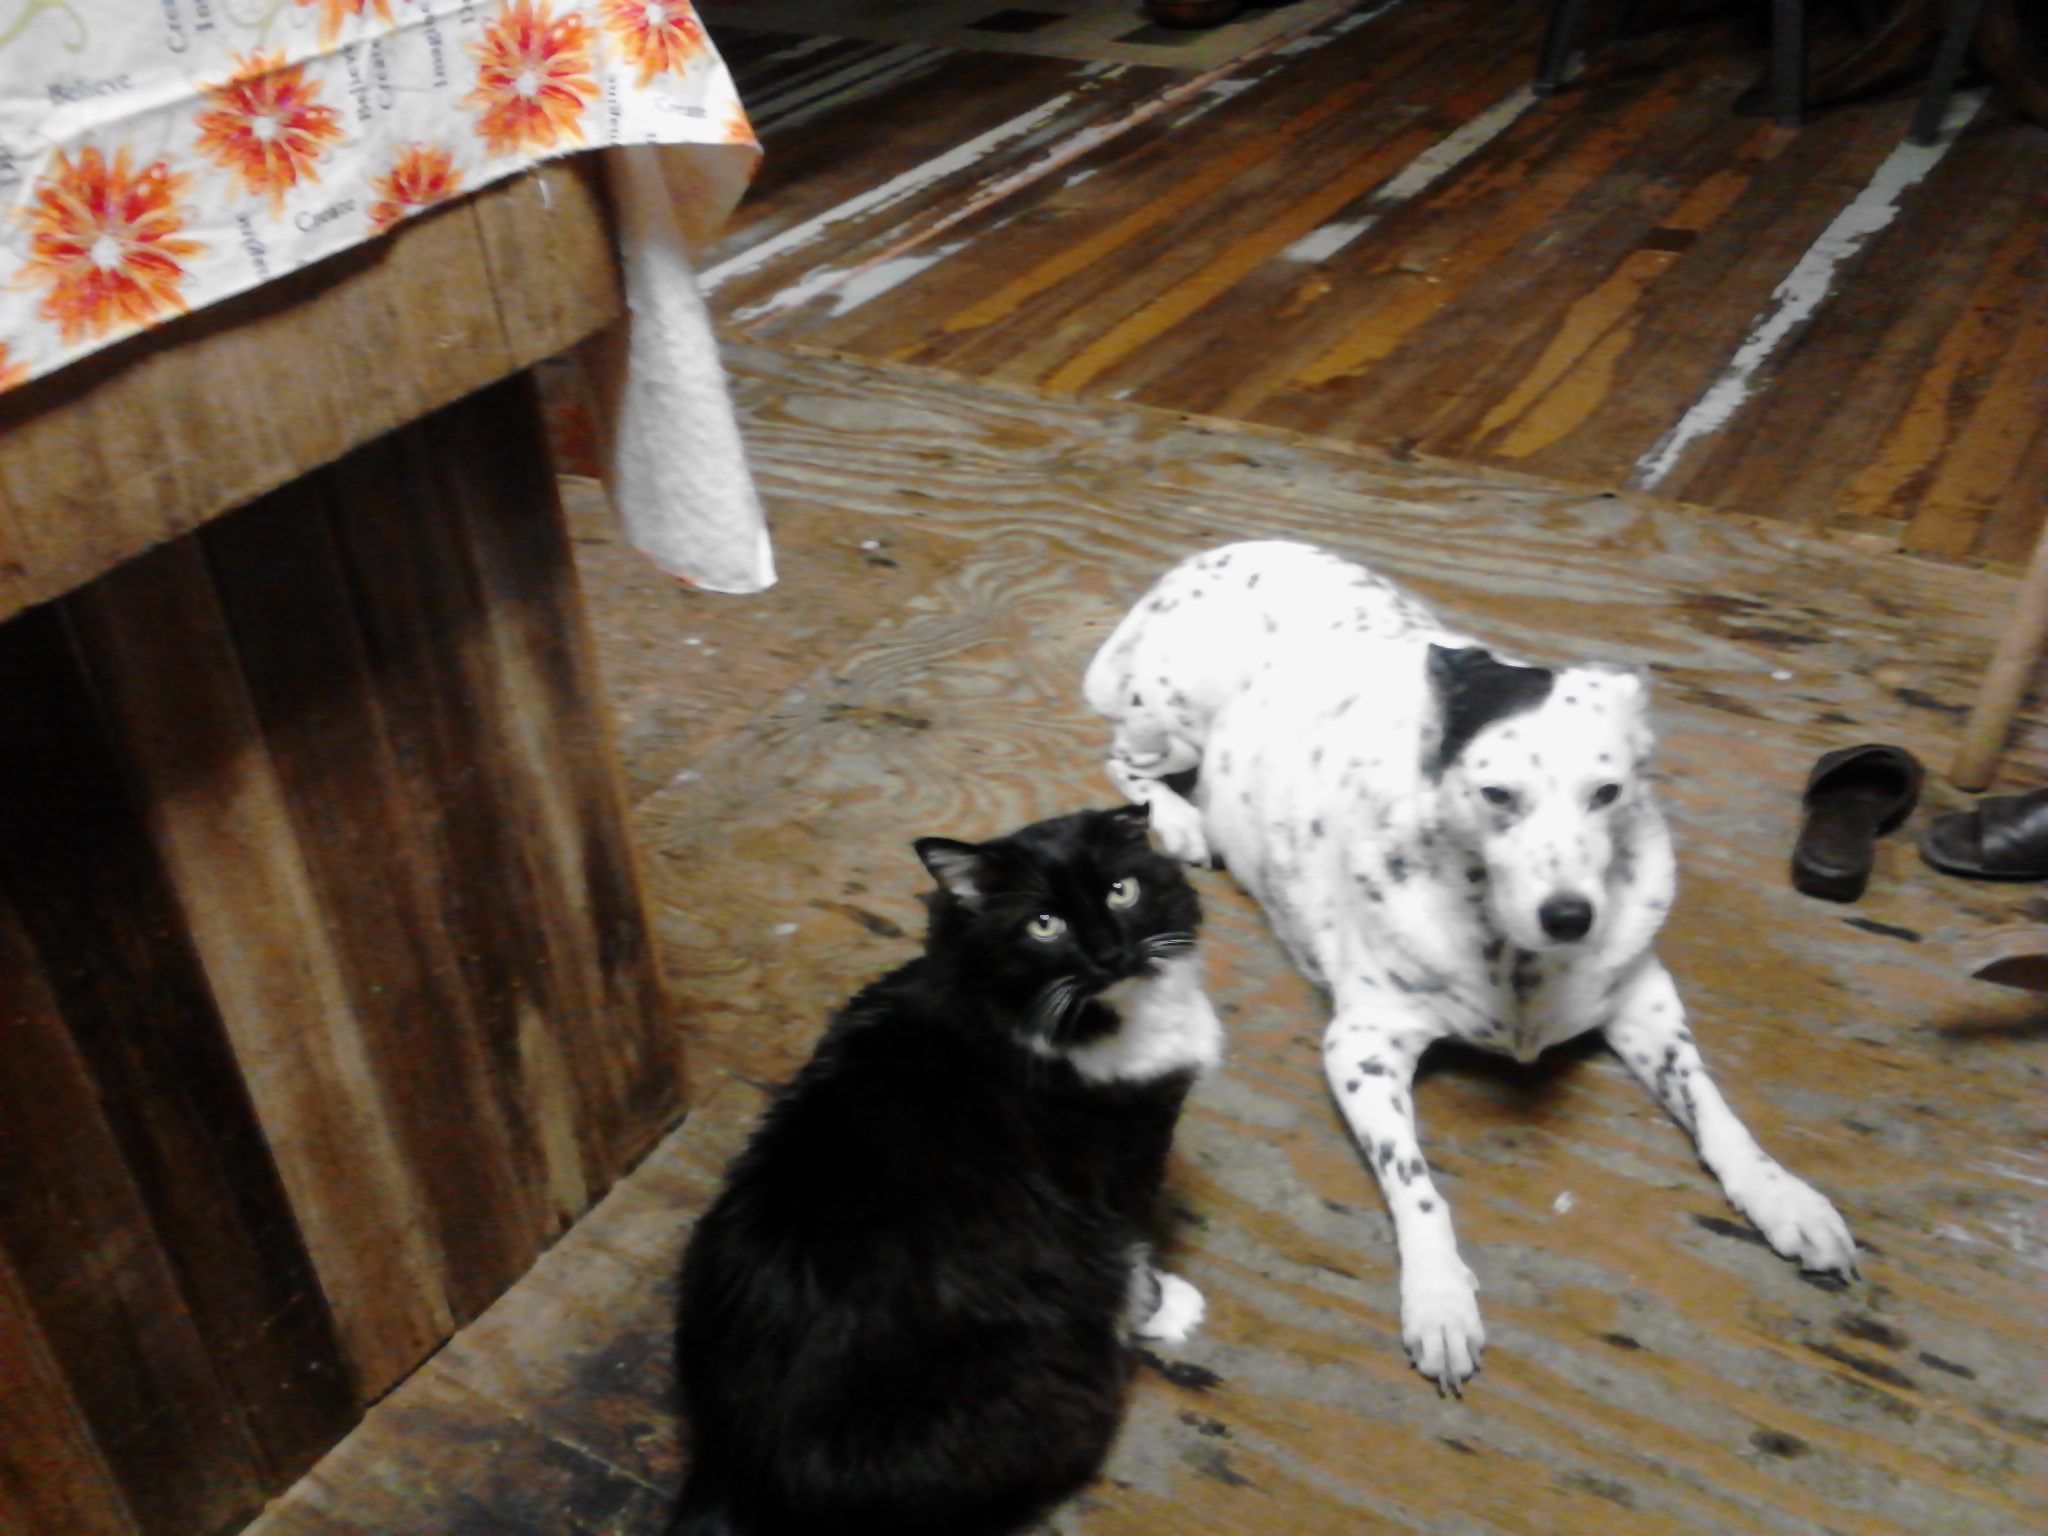 Stuie and the dog, November 2014